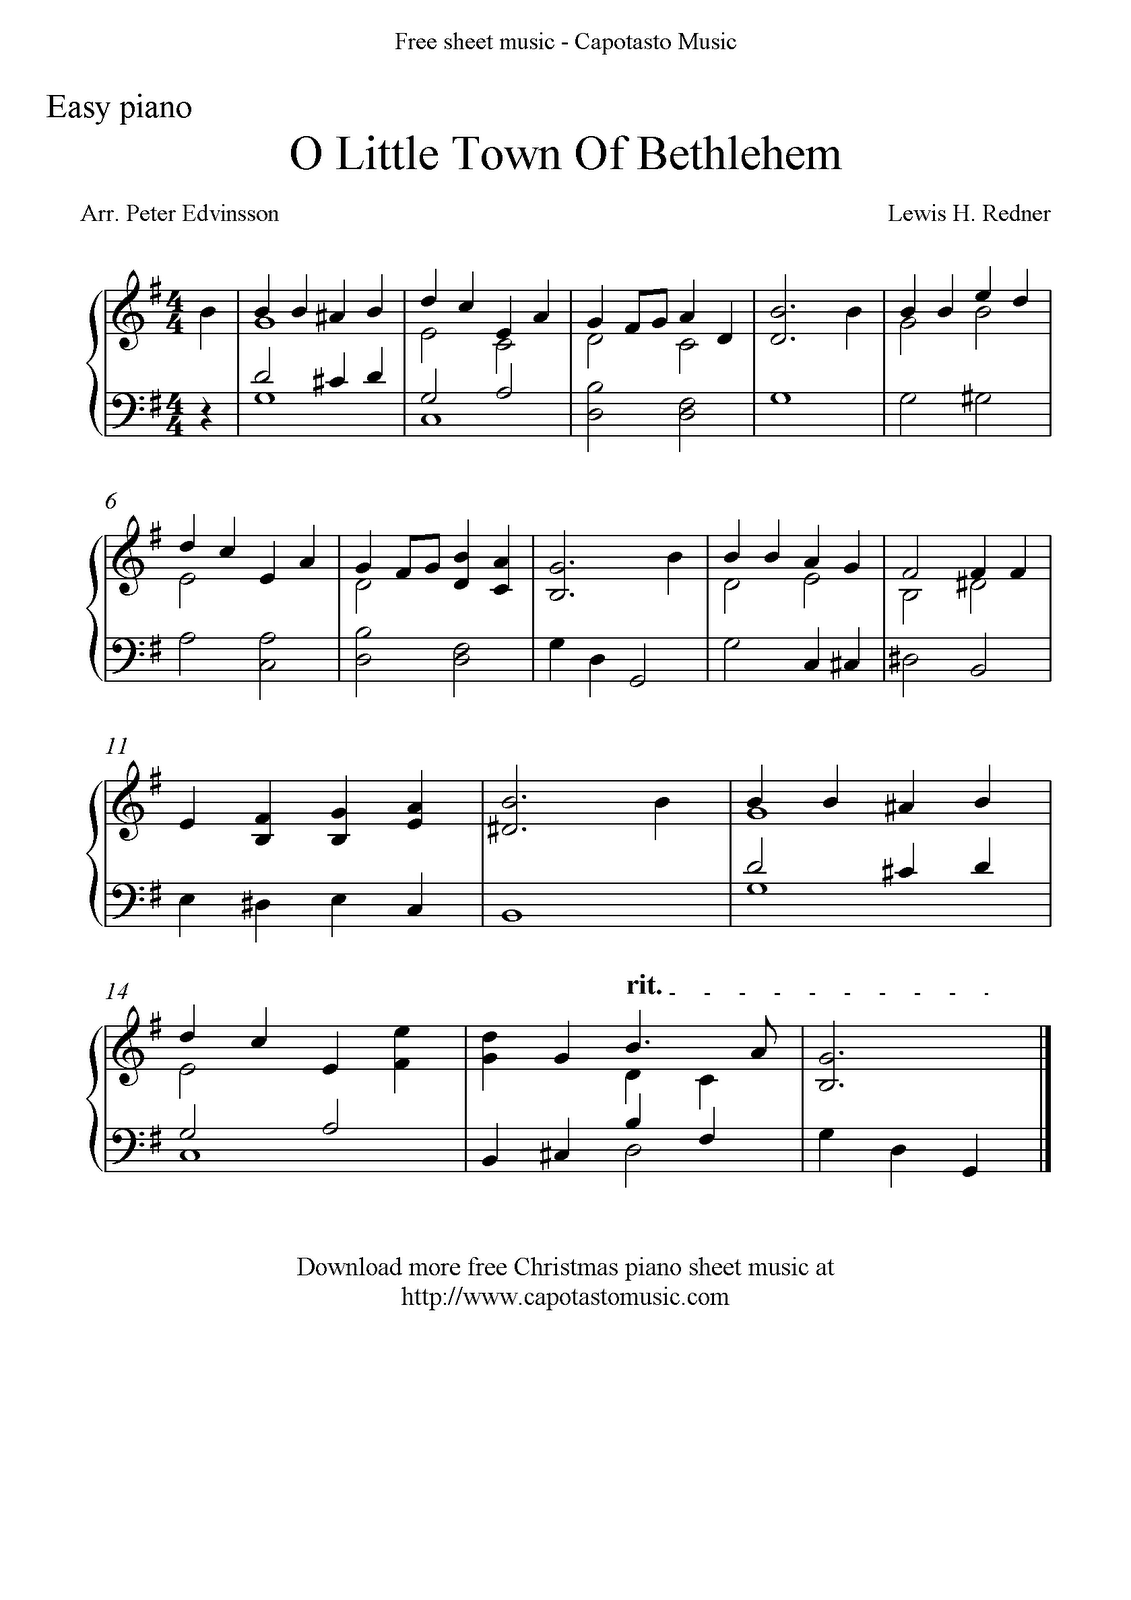 Free easy piano sheet music for Christmas, O Little Town